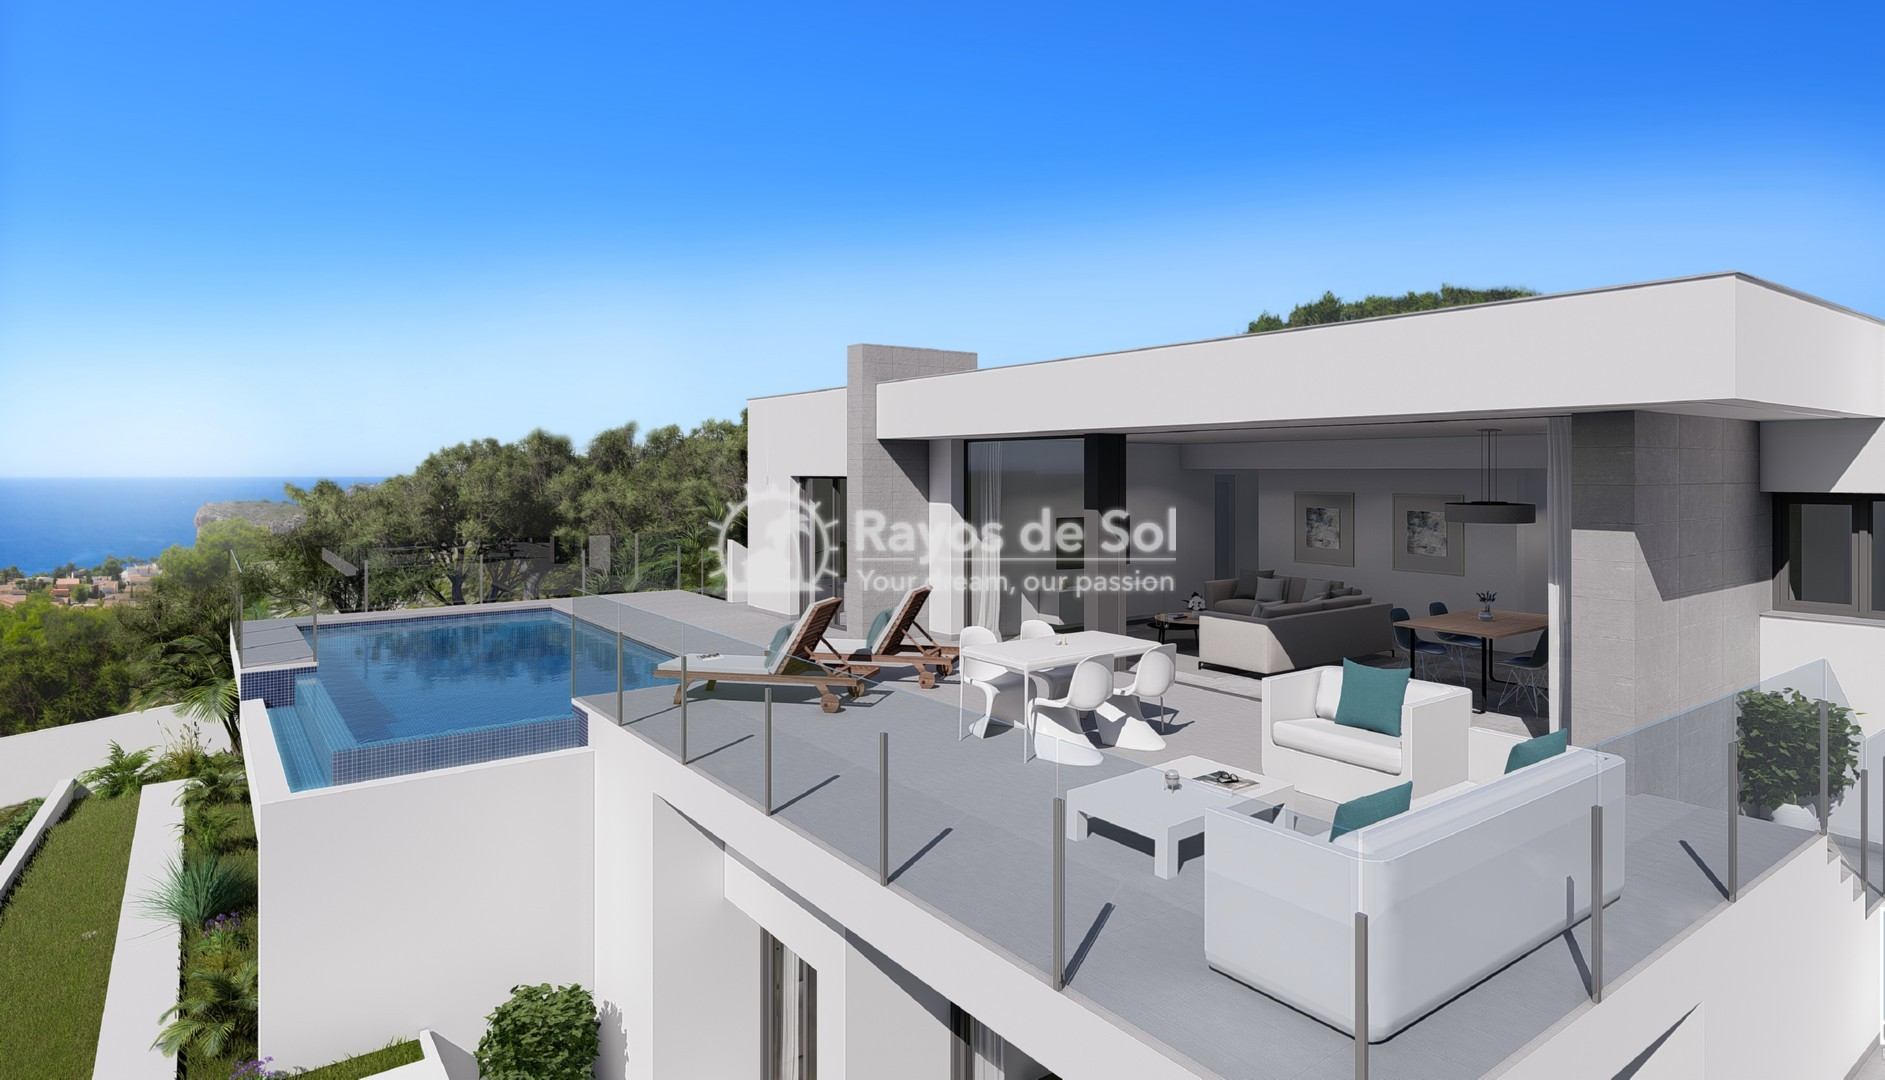 Single storey villa in Cumbre del Sol, Benitachell, Costa Blanca (BEVALIDCR) - 1